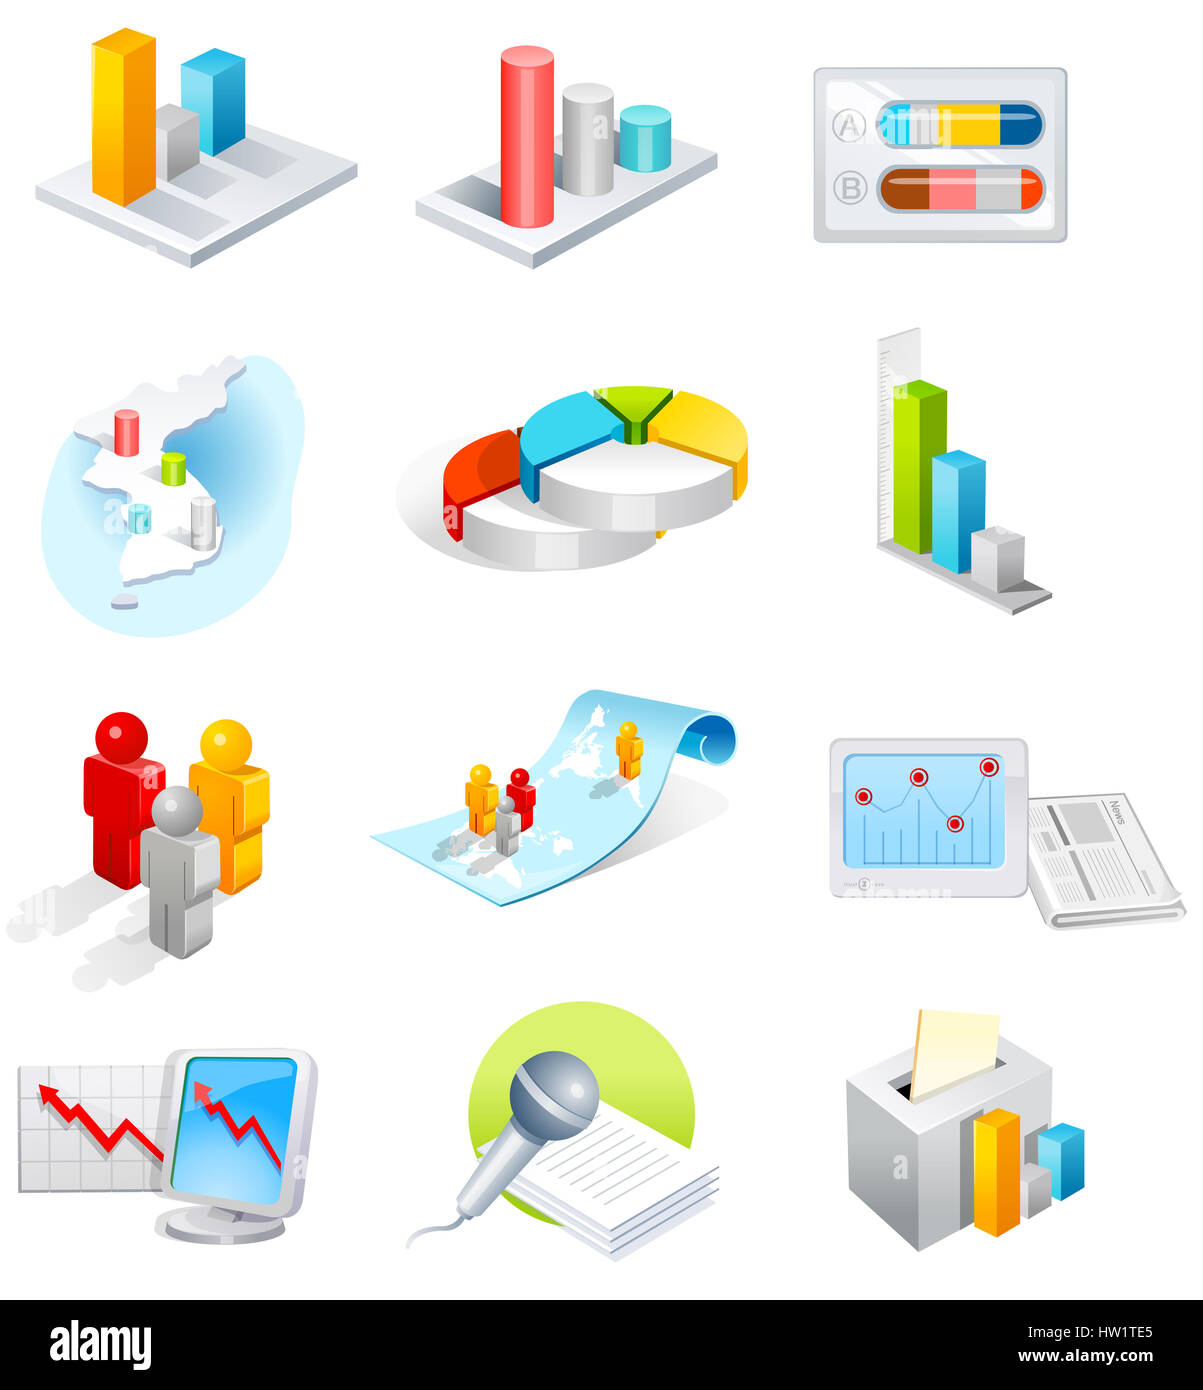 bar graph,business,chart,clip art,clipart,coin,color,colour,color